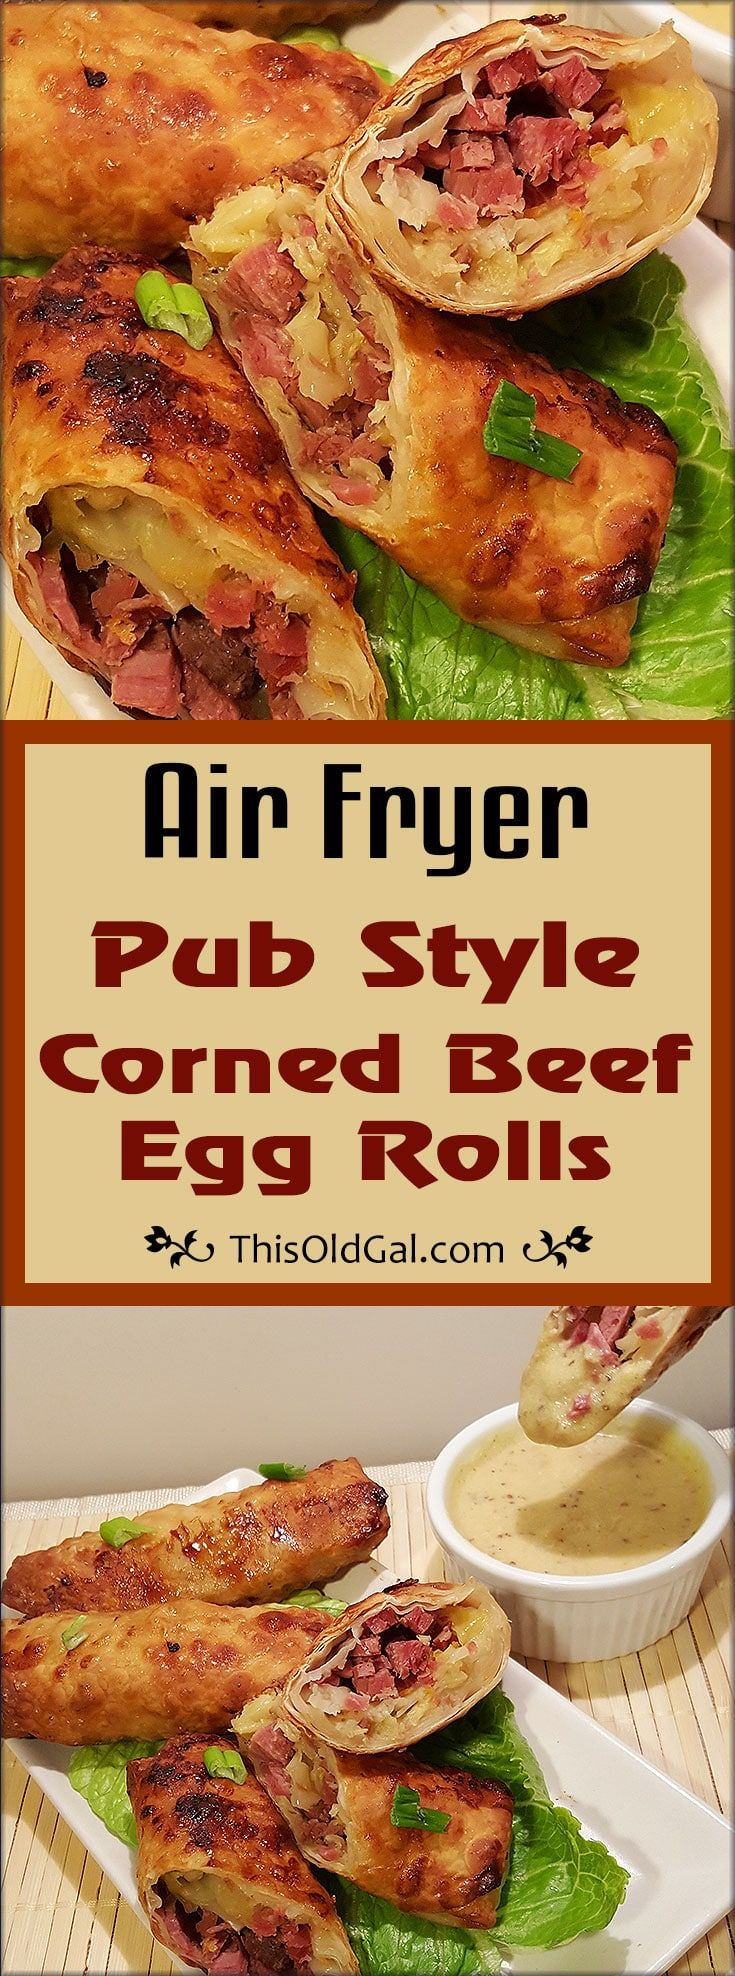 These Air Fryer Pub Style Corned Beef Egg Rolls served